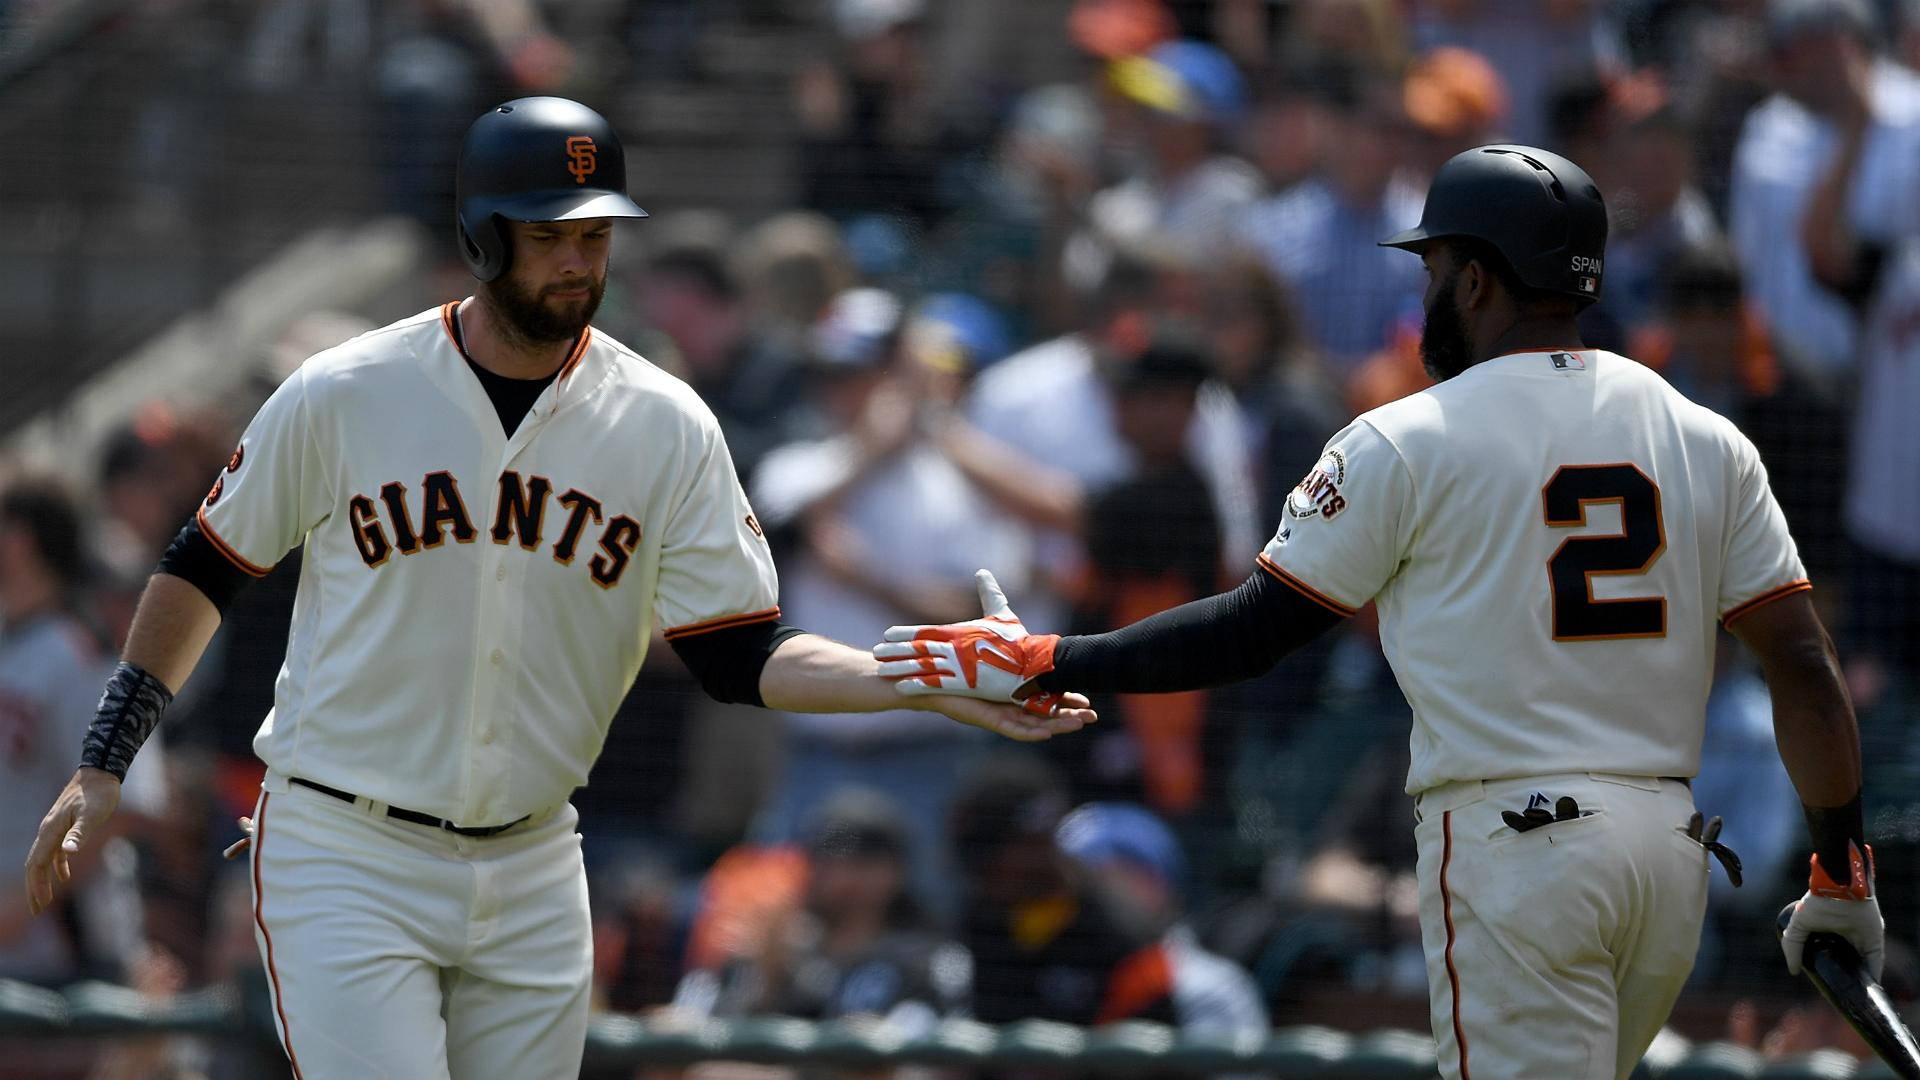 Giants outscore Padres in thriller, Blue Jays swept at home by White Sox